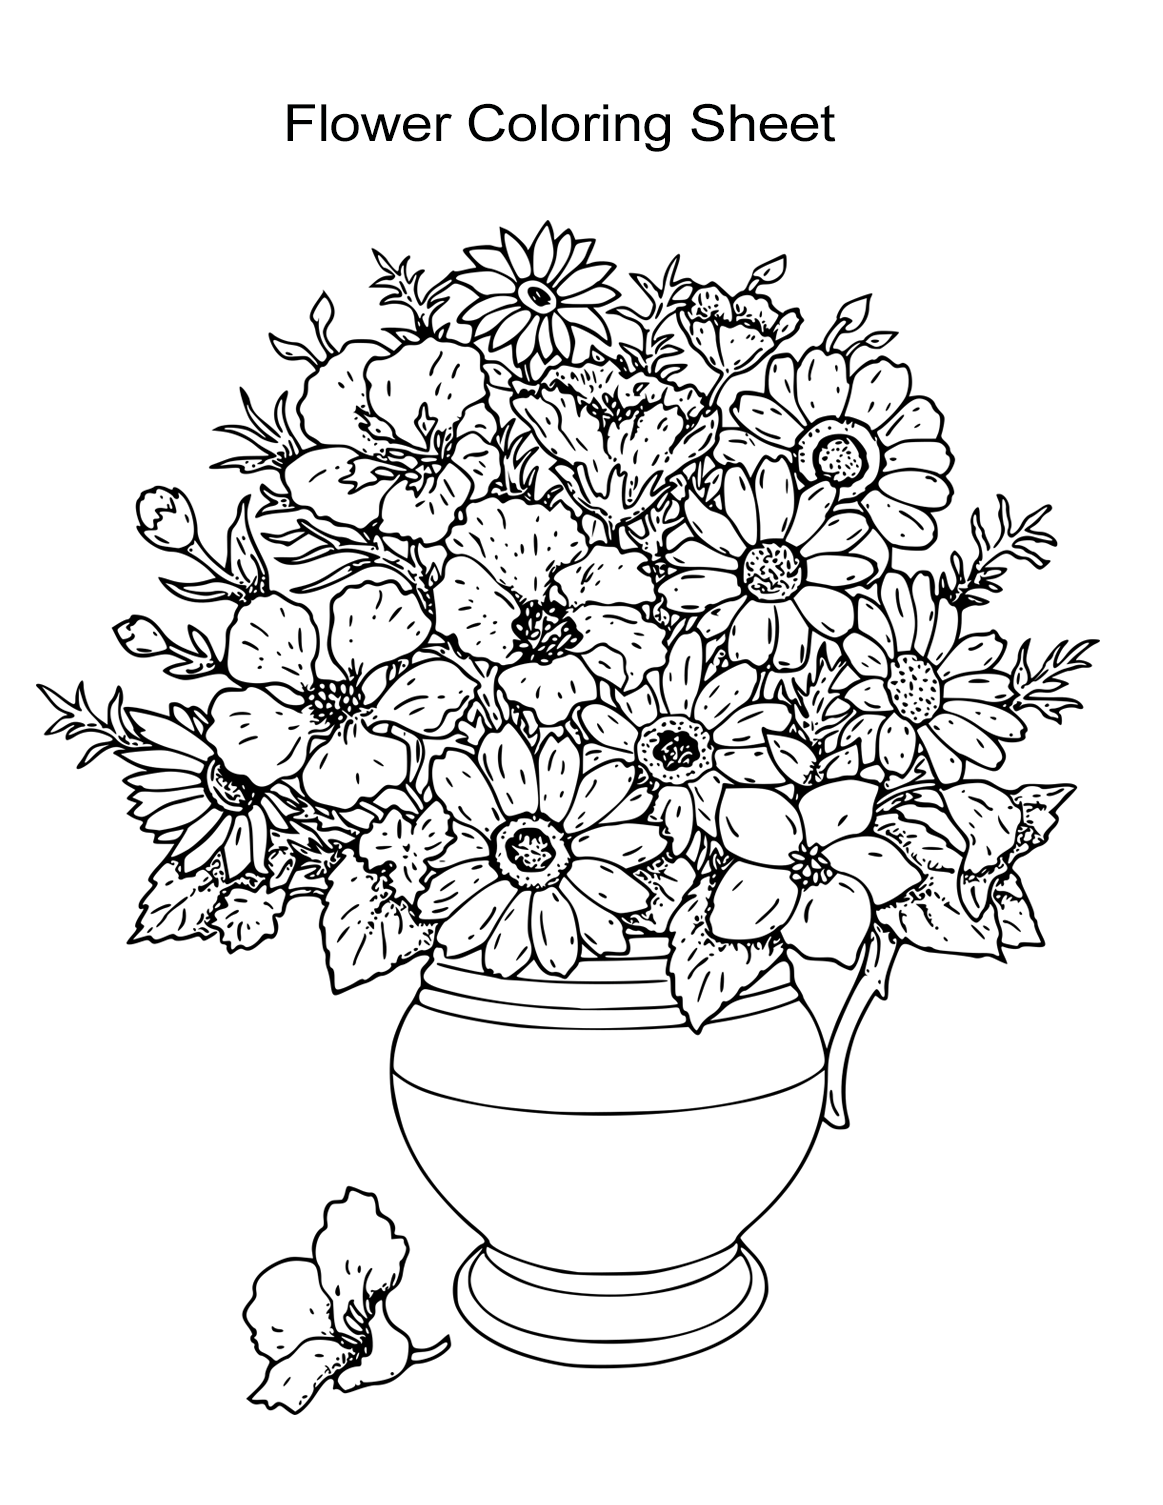 flowers colouring detailed flower coloring pages to download and print for free flowers colouring